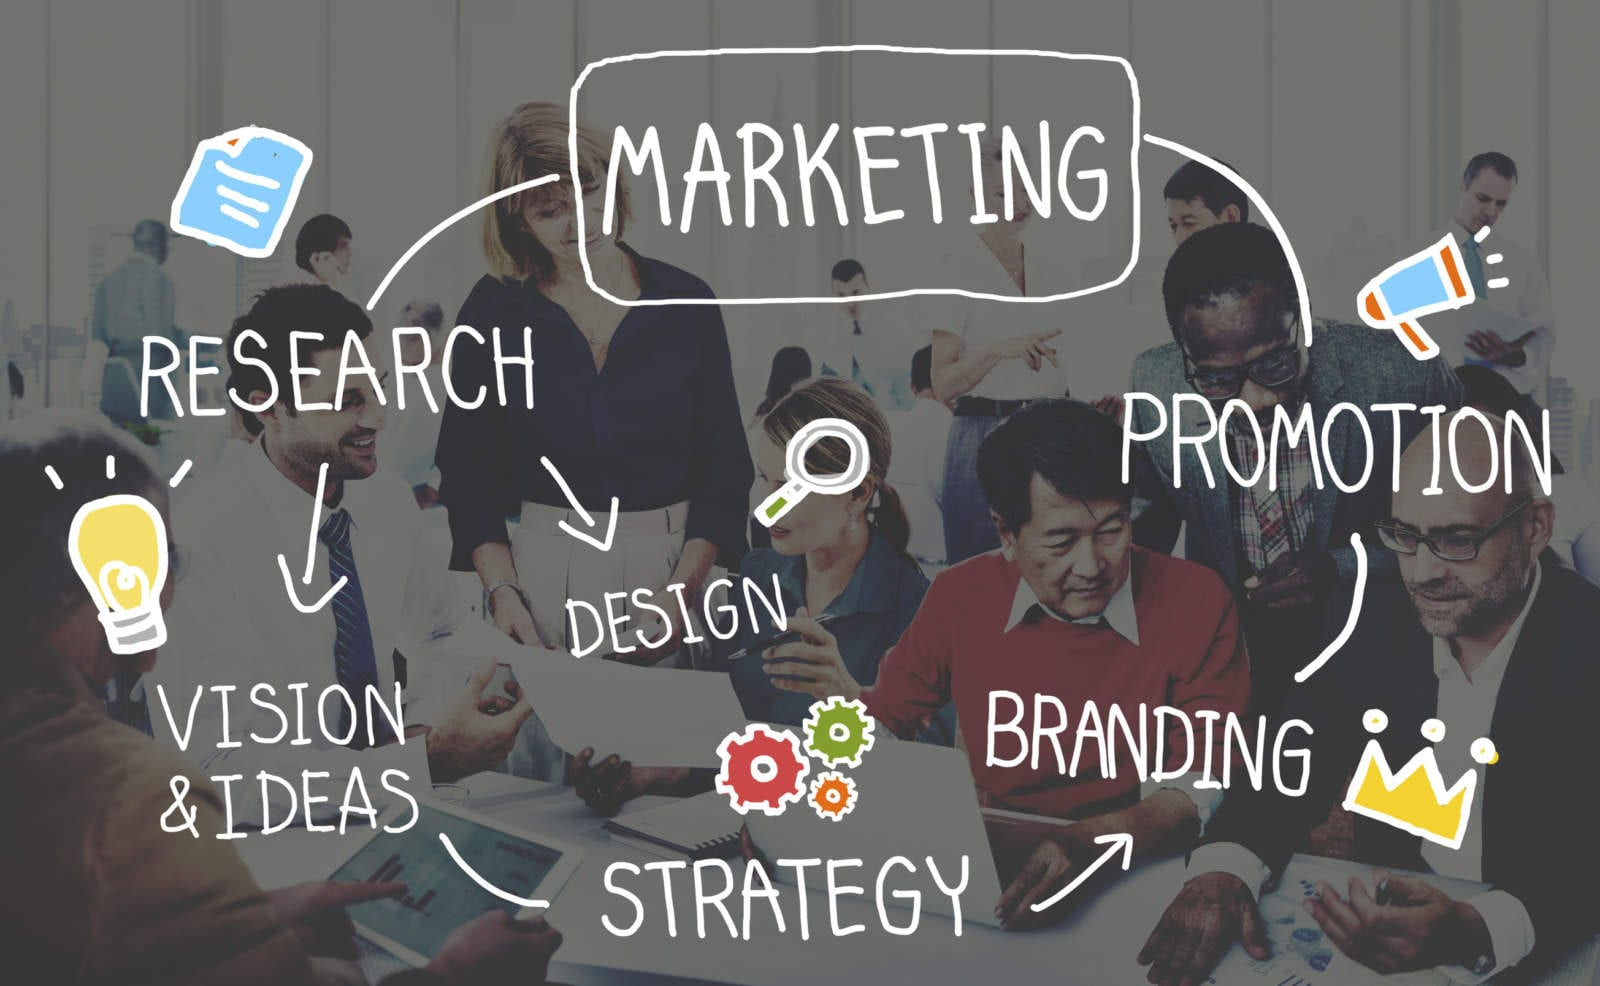 3 Basic Skills for Marketers!